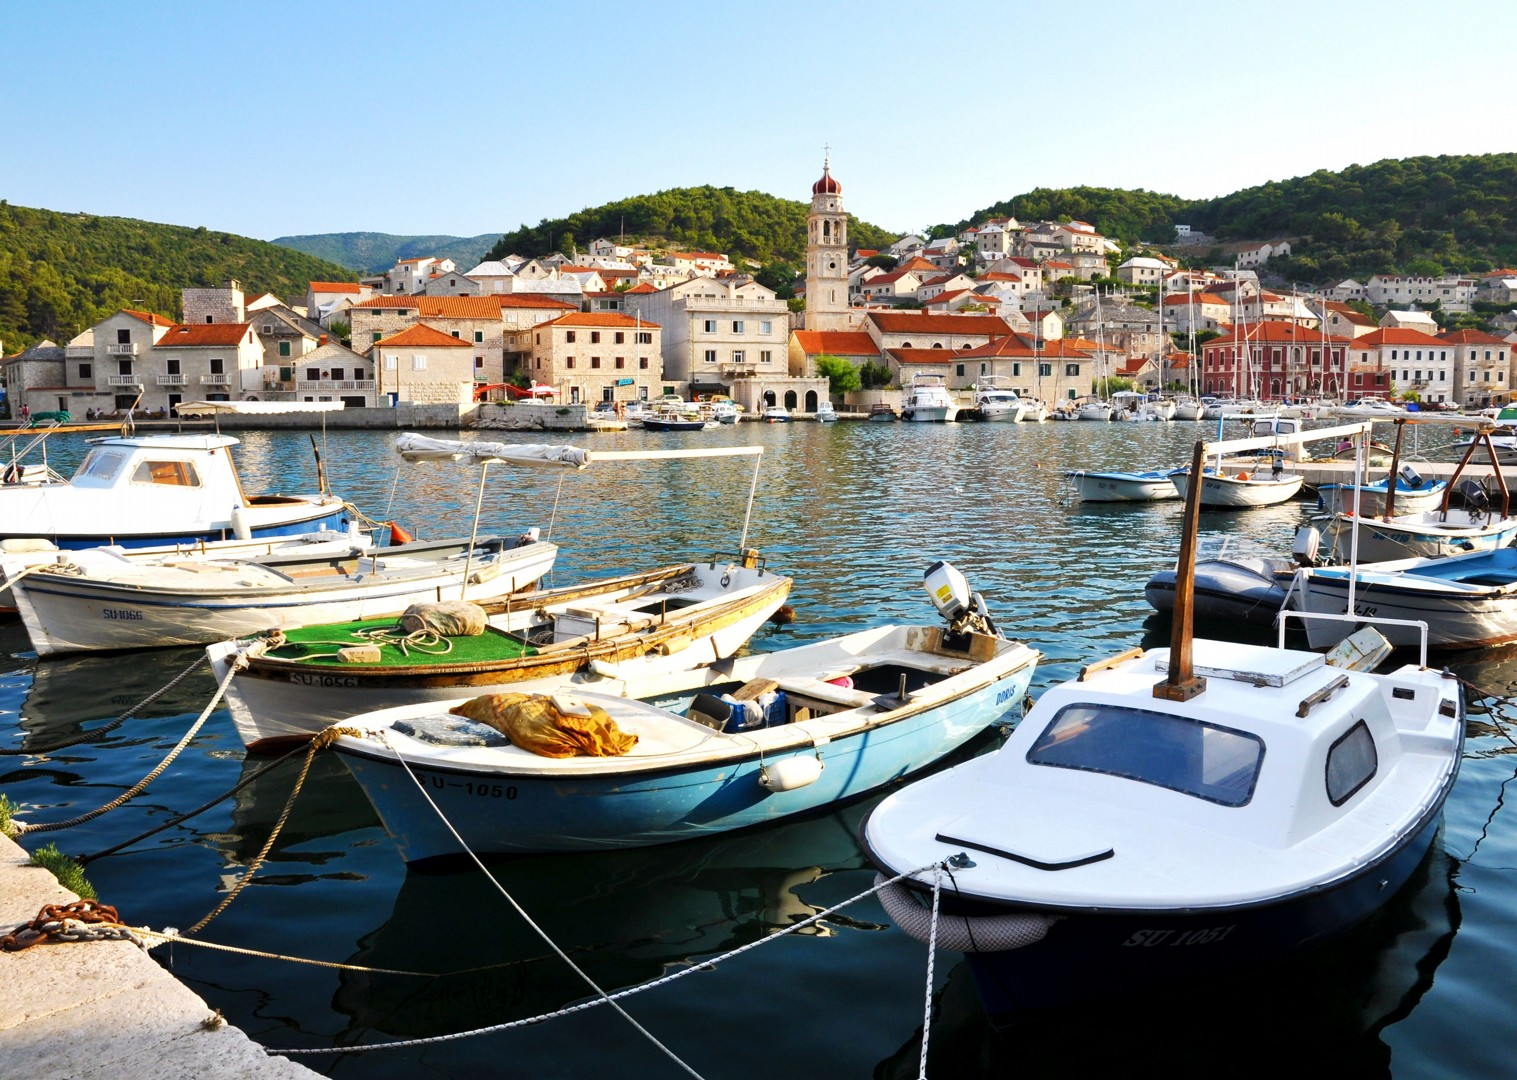 brac-isalnd-cycling-adventure-croatia.jpg - Croatia - Southern Dalmatia - Bike and Boat Holiday - Leisure Cycling